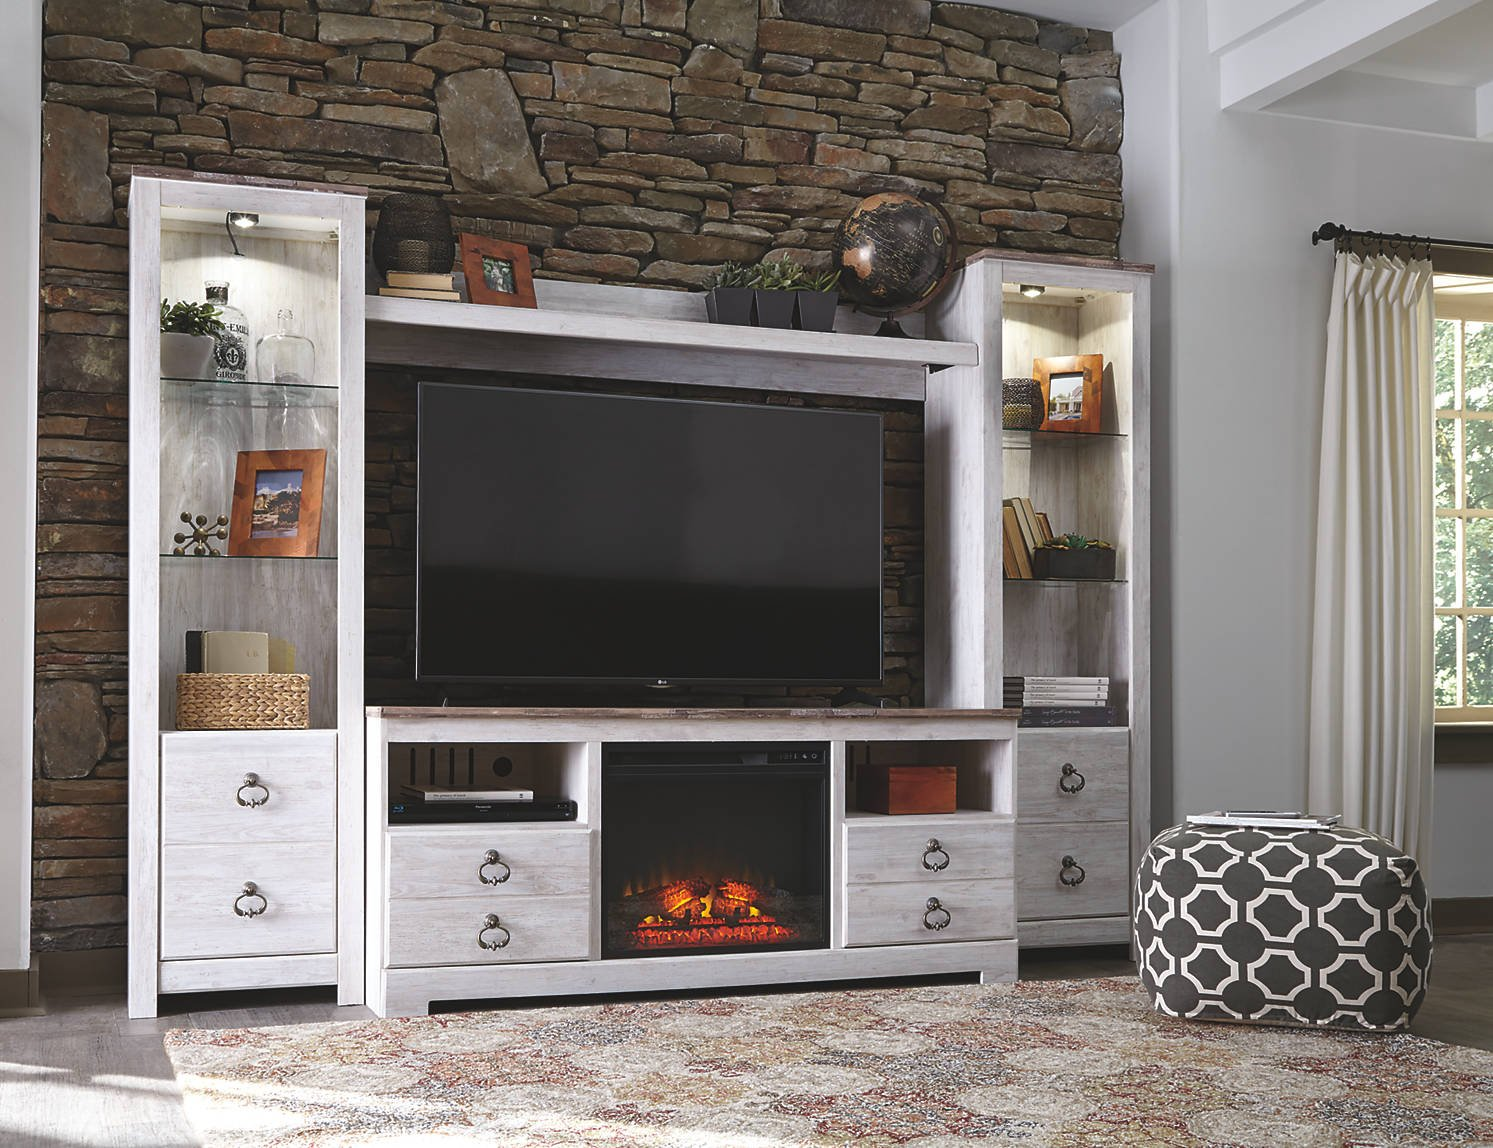 Signature Design by Ashley Willowton Large TV Stand with Fireplace Option Whitewash by Signature Design by Ashley